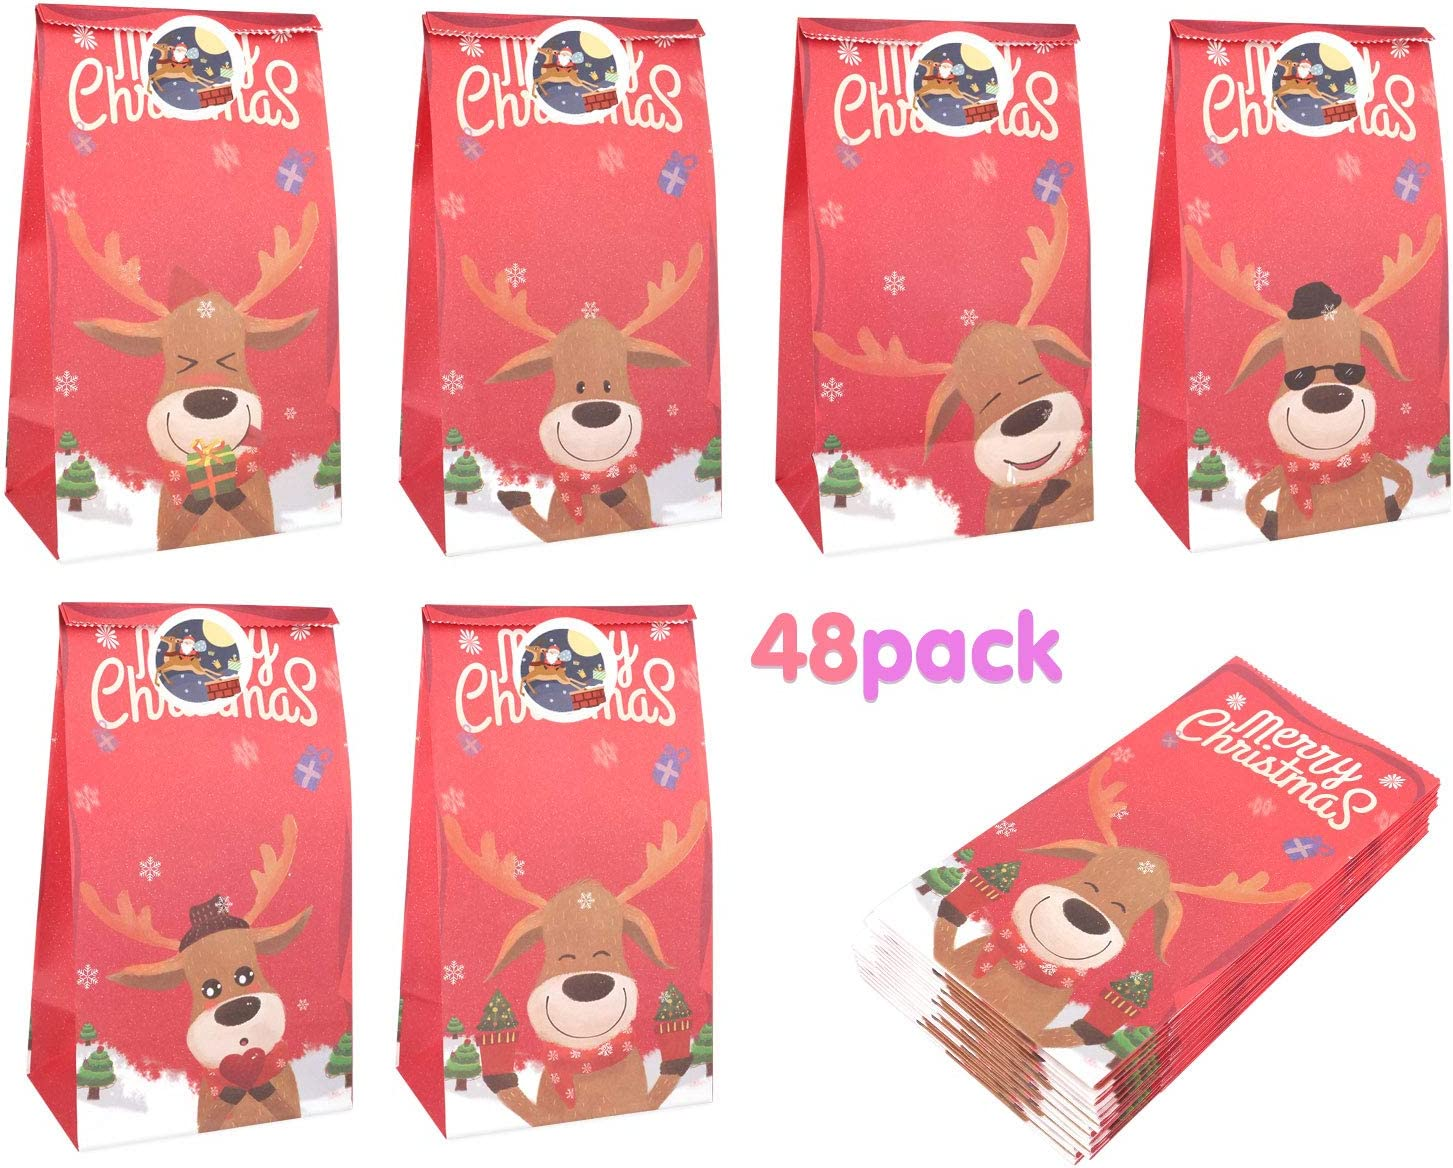 Zooawa [48 PACK] Christmas Treat Bags, Christmas Deer Craft Paper Gift Bags, Candy Treat Gift Bags for Xmas Party Favor Snacks Gift Packing Supplies - Red